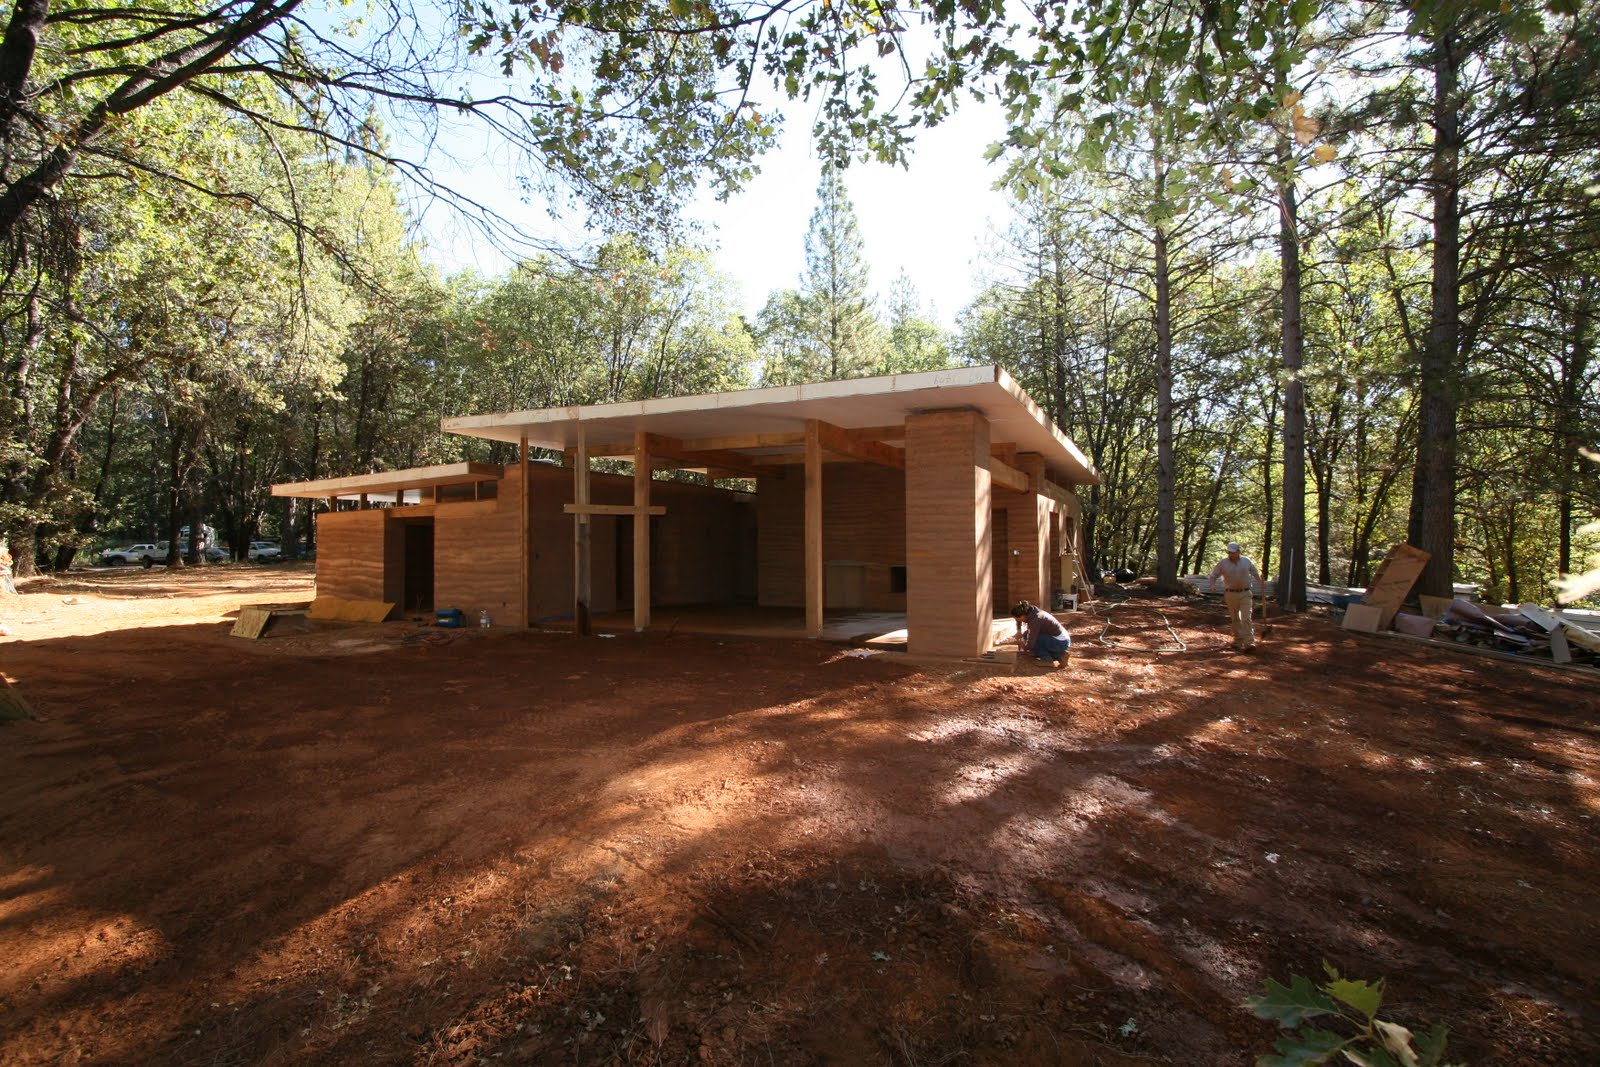 A Contemporary Rammed Earth Home in the Mountains on compressed earth block homes, modern earth sheltered homes, earth cement floors in homes, modern ranch style house designs, earth natural built homes, modern home design,